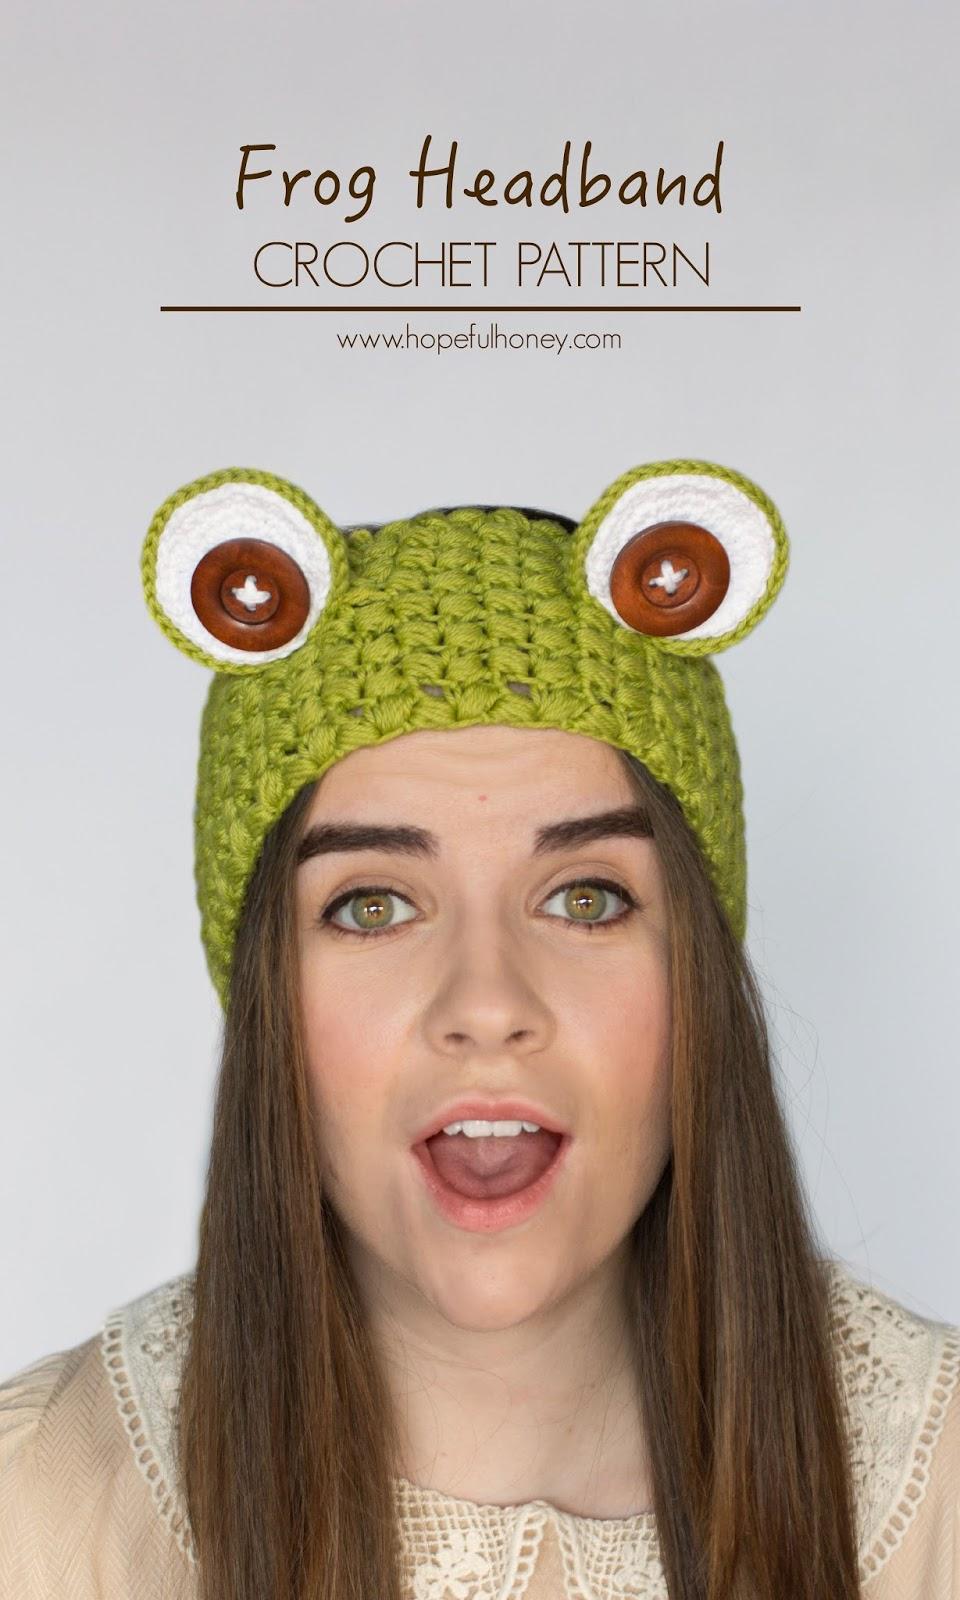 Hopeful Honey Craft, Crochet, Create: Frog Headband ...